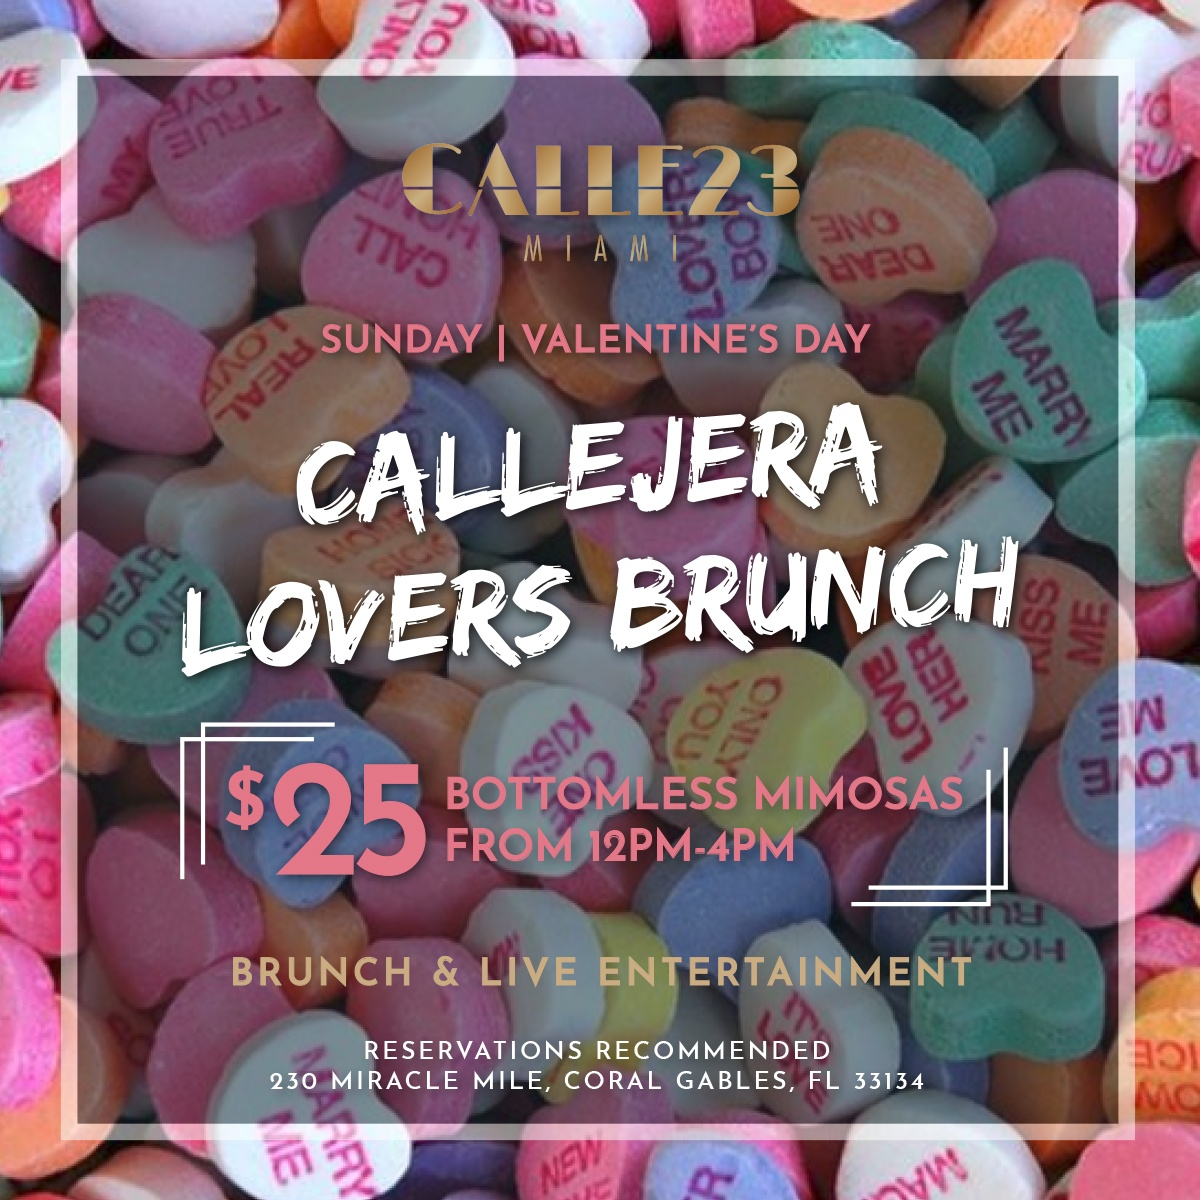 Calle 23 Miami celebrates Valentine's Day with a Lovers Brunch and Happy Hour!